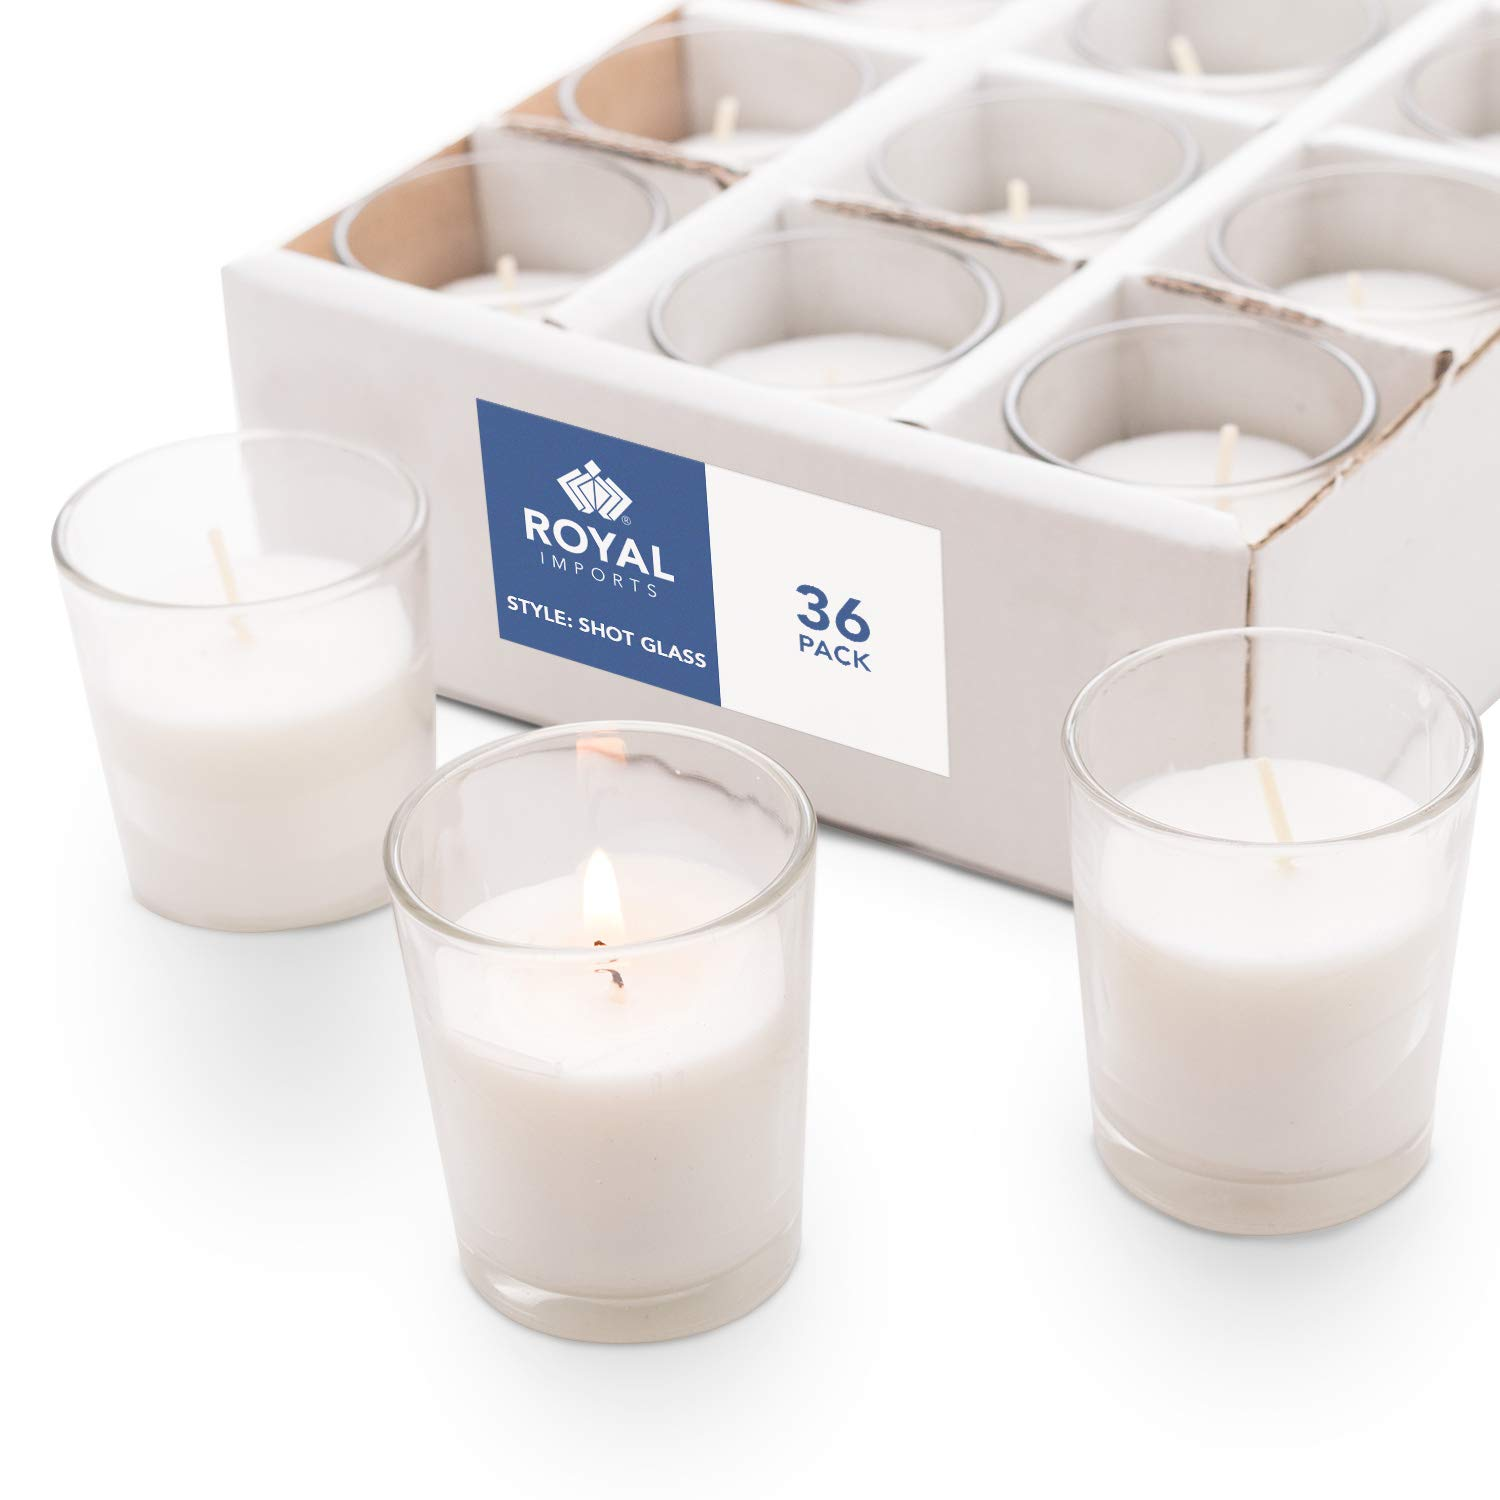 Royal 36 pack votive candle set - You'll love these 9 Awesome Gift Ideas for Folks Who Like to Entertain plus a bunch of holiday entertaining essentials! #entertaining #giftguide #holidaygiftguide